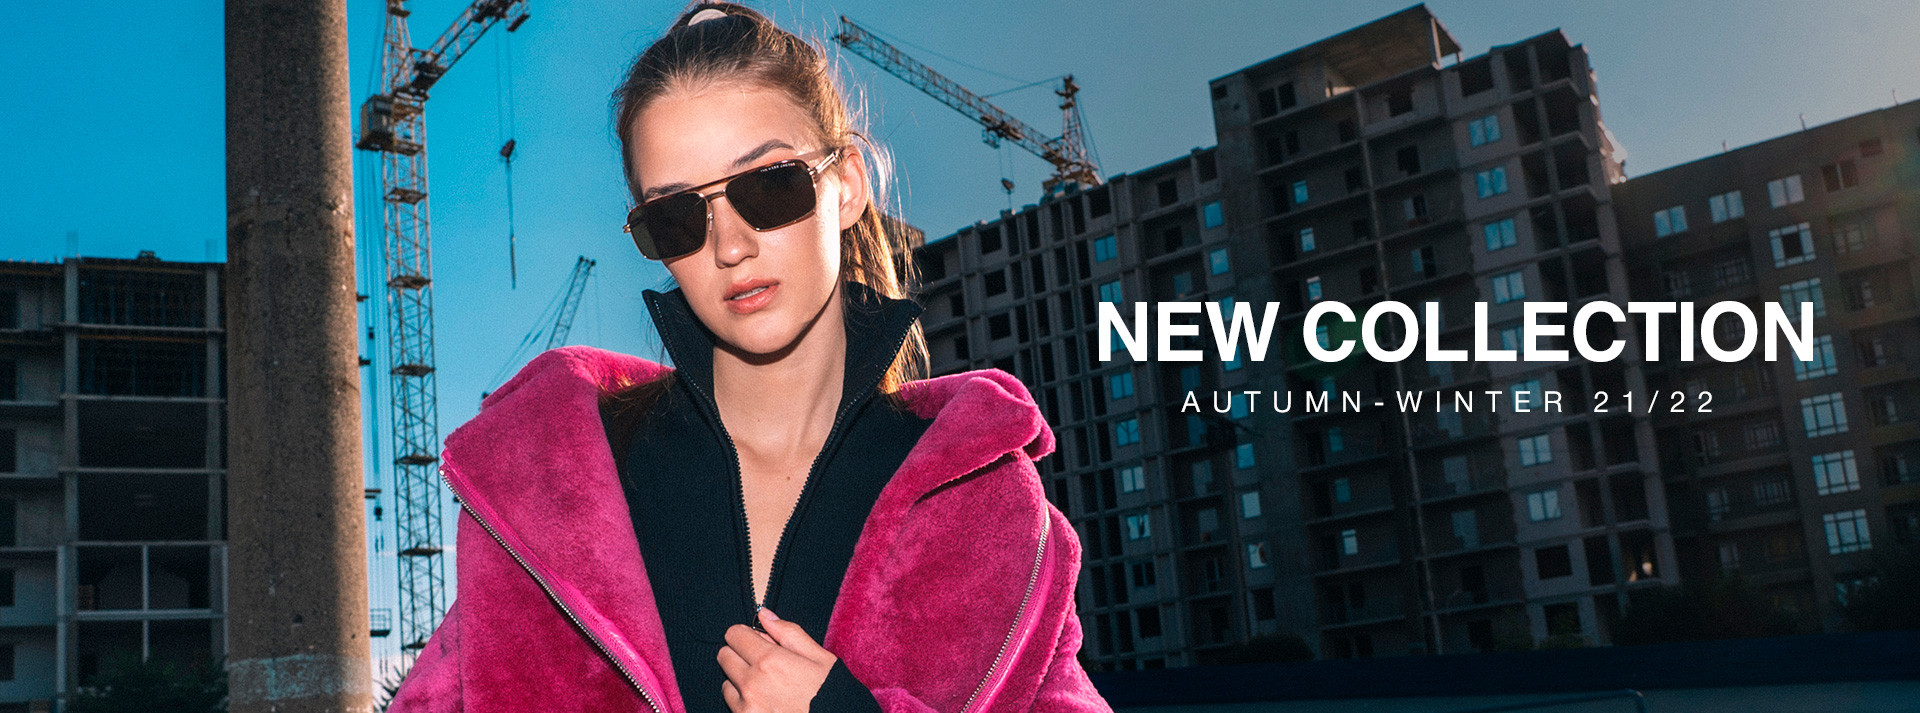 New collection AW21/22